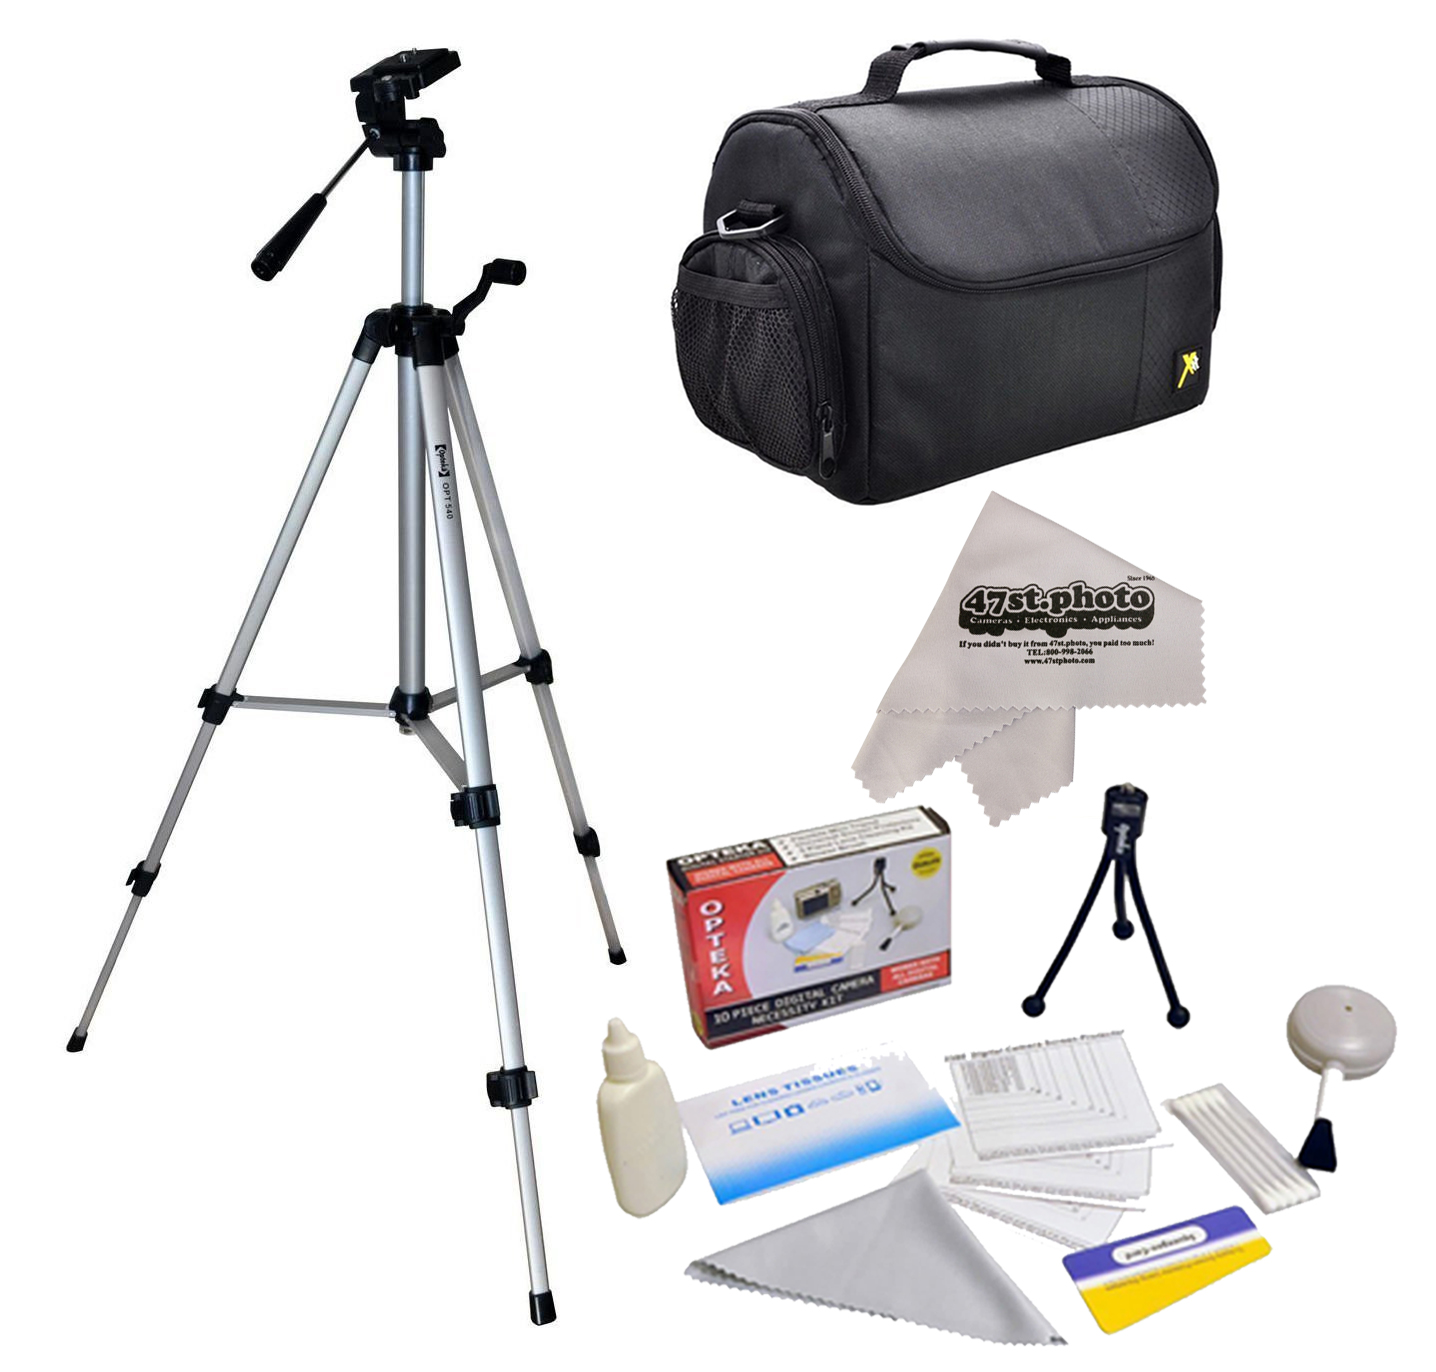 "Professional 54"" Photo/Video Tripod, Deluxe Digital Camera Padded Travel Case for Nikon D1 D1H D1X D2X D2Xs D2H D2Hs D3 D3s D3x D4 D4s D40 D40x D50 D60 D70"